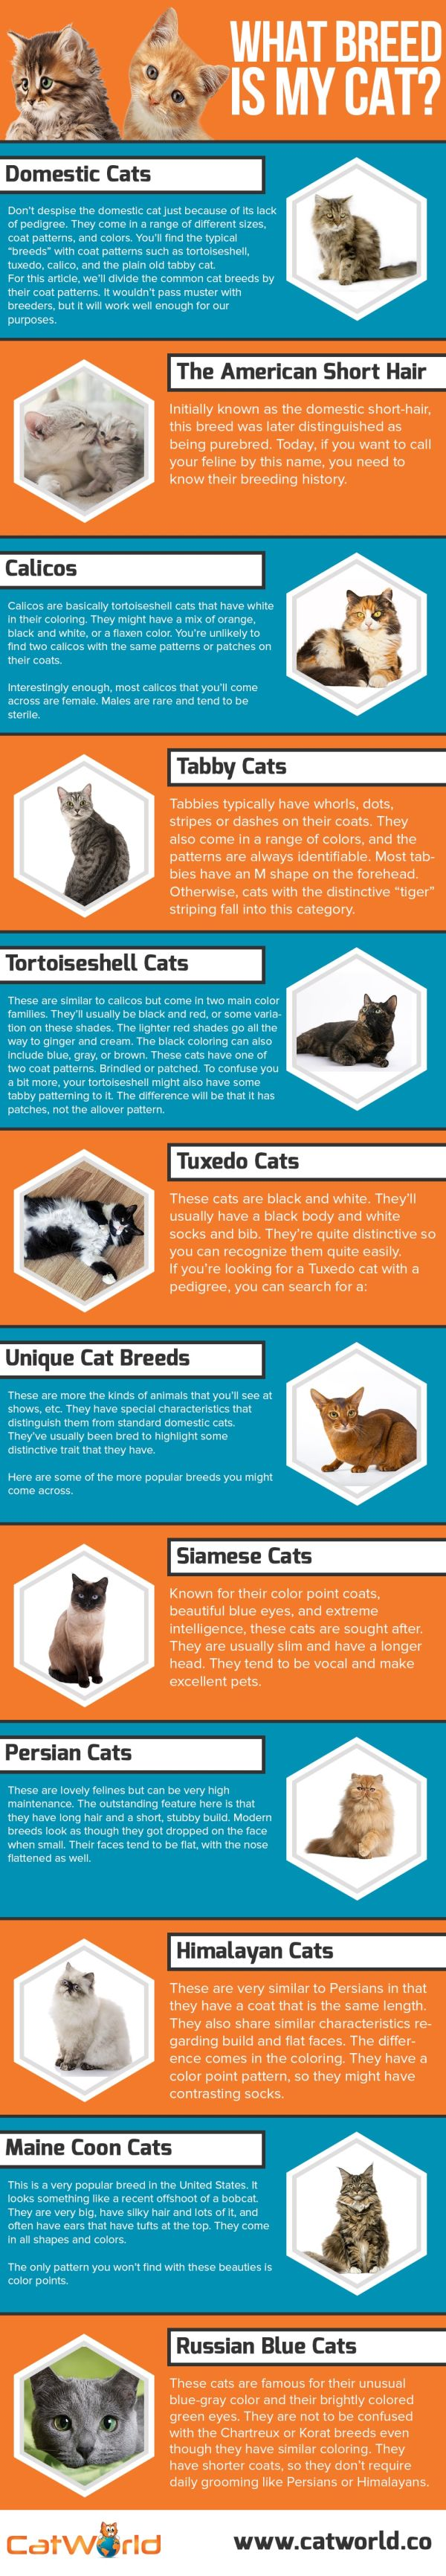 List Of Popular Cat Breeds What Breed Is Your Cat